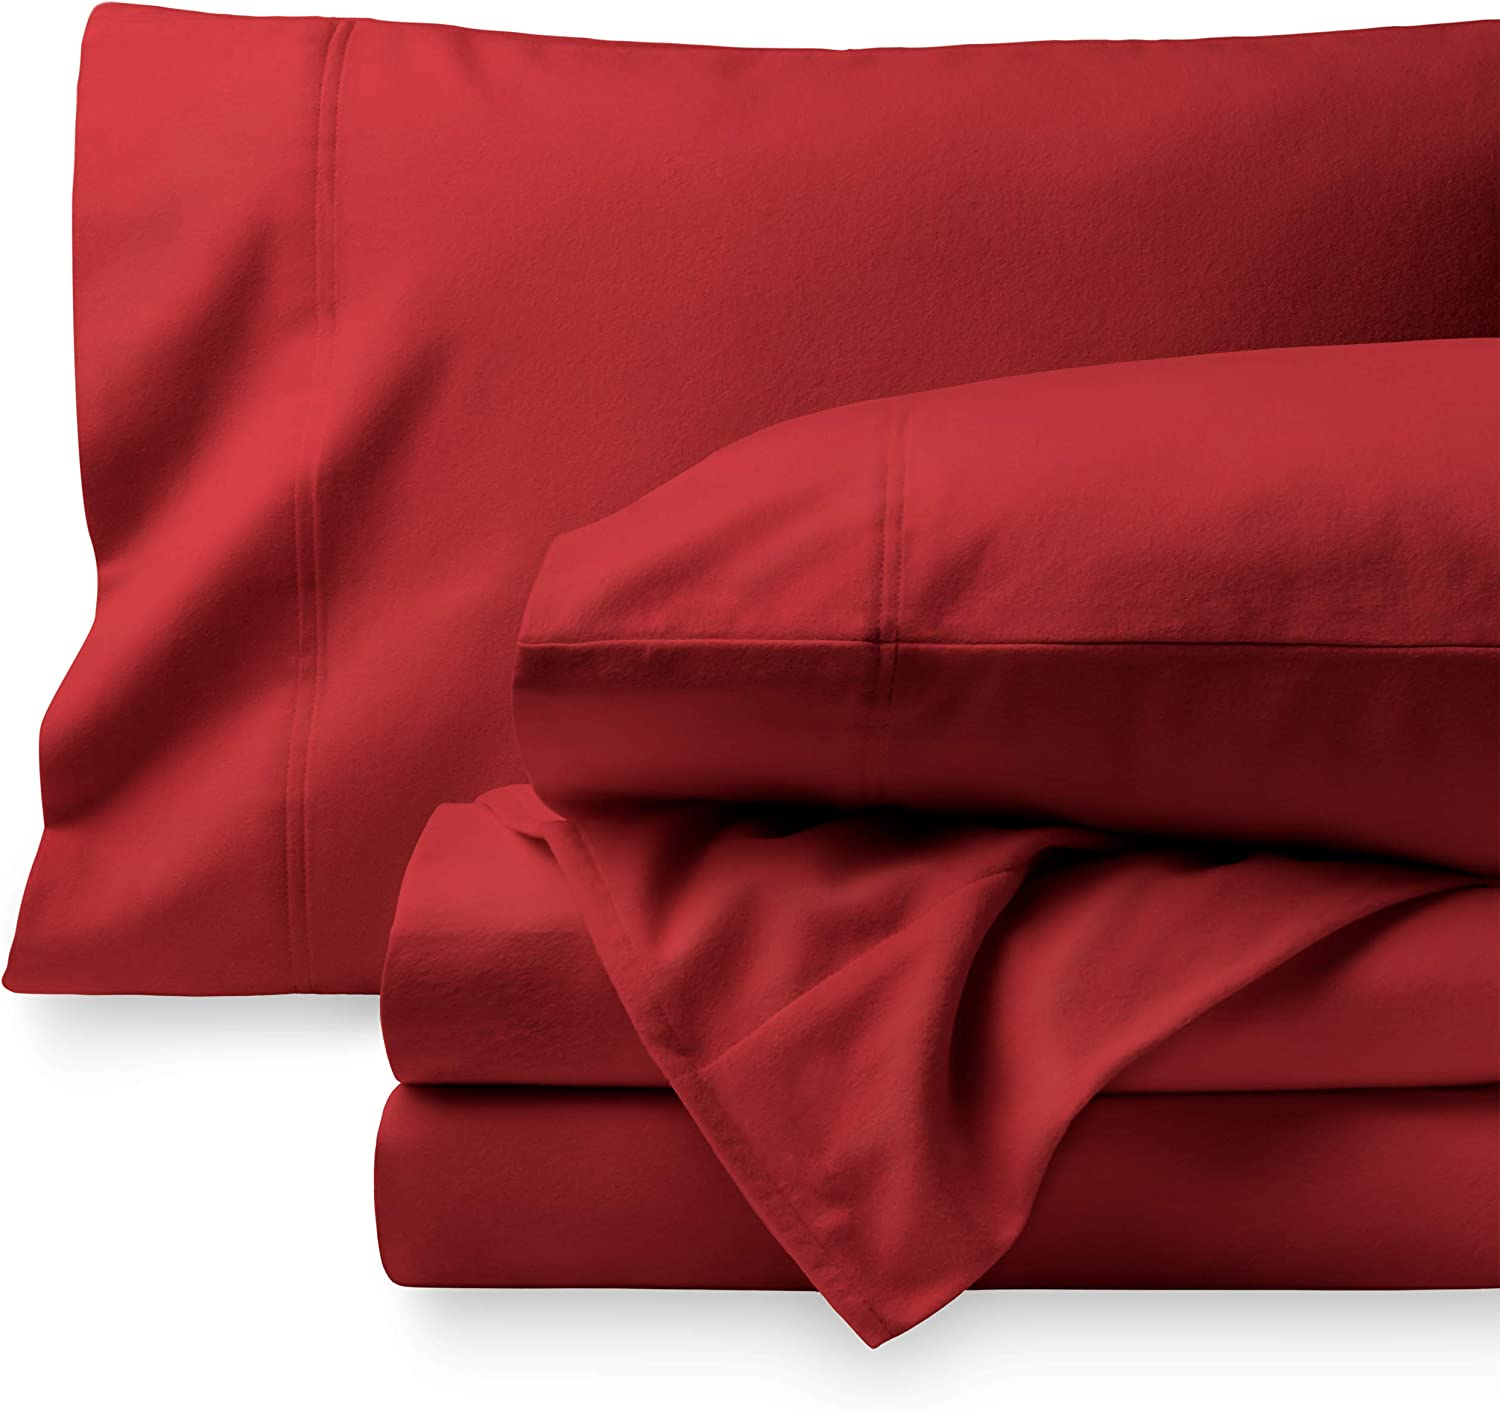 Bare Home Flannel Sheet Set 100% Cotton, Velvety Soft Heavyweight - Double Brushed Flannel - Deep Pocket (King, Red)